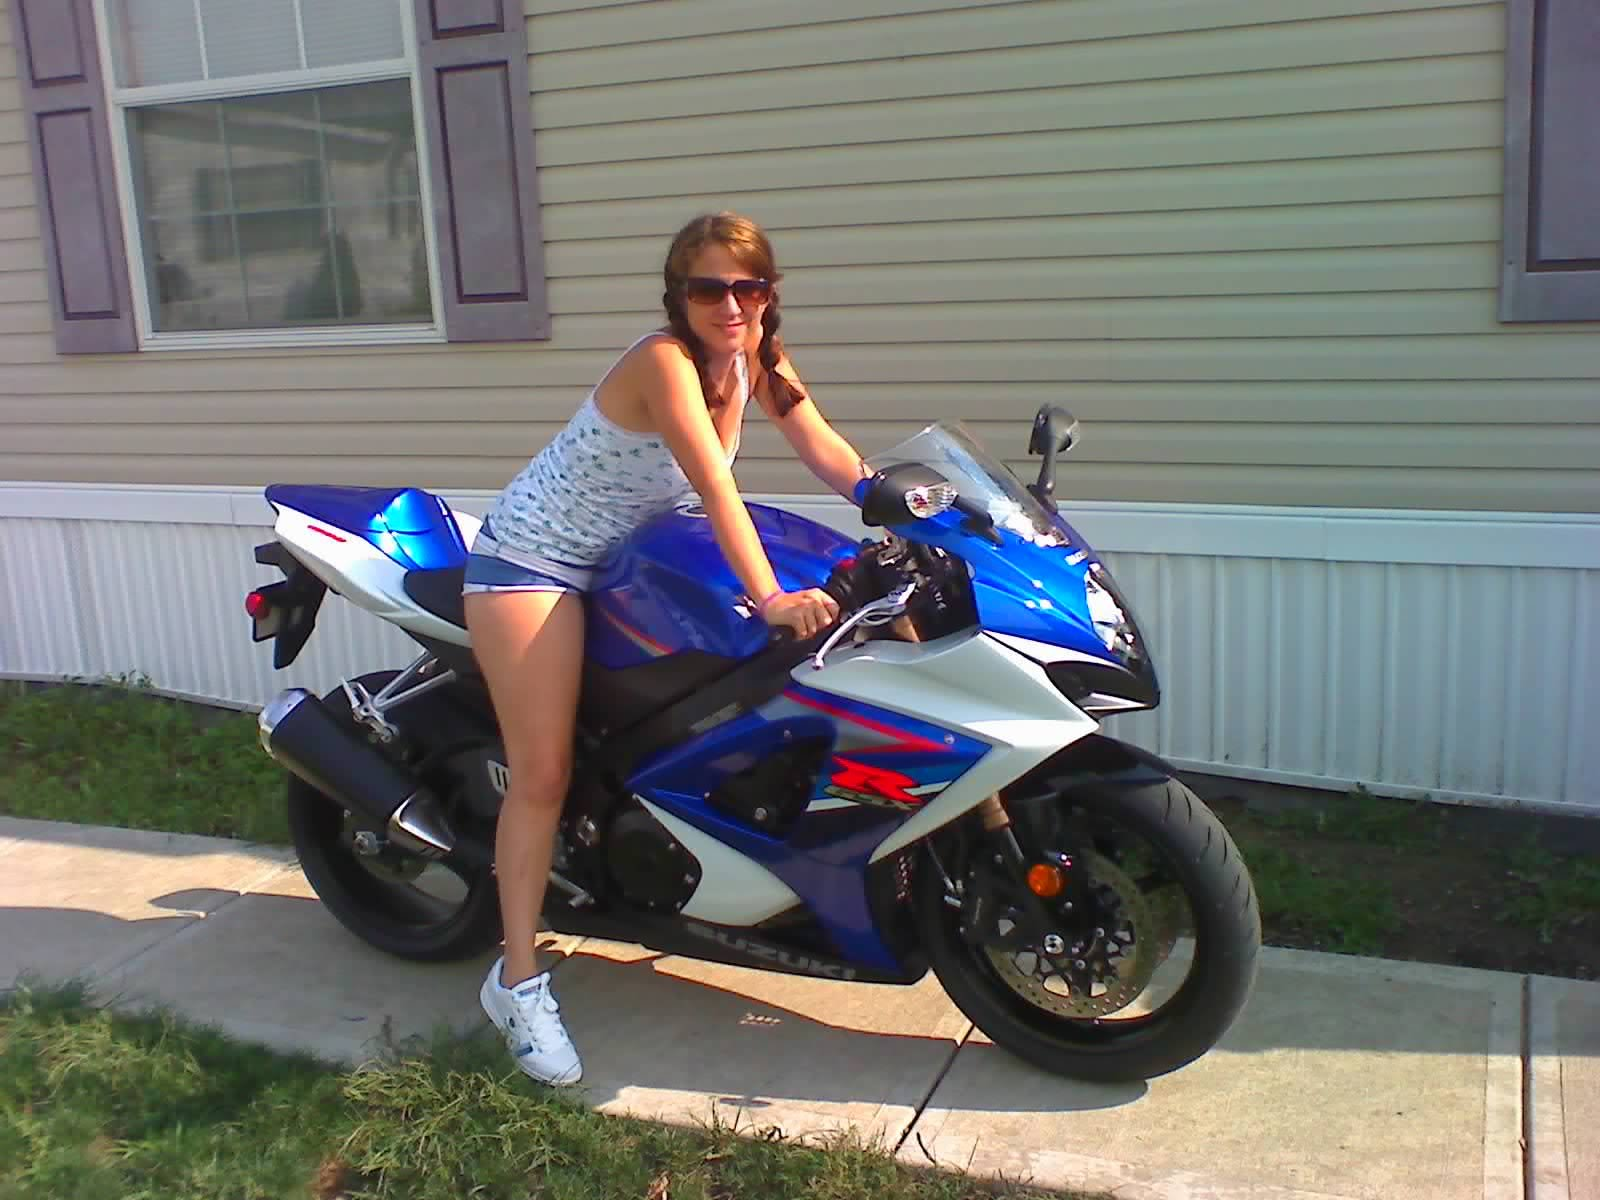 pretendin i can ride a motorcycle